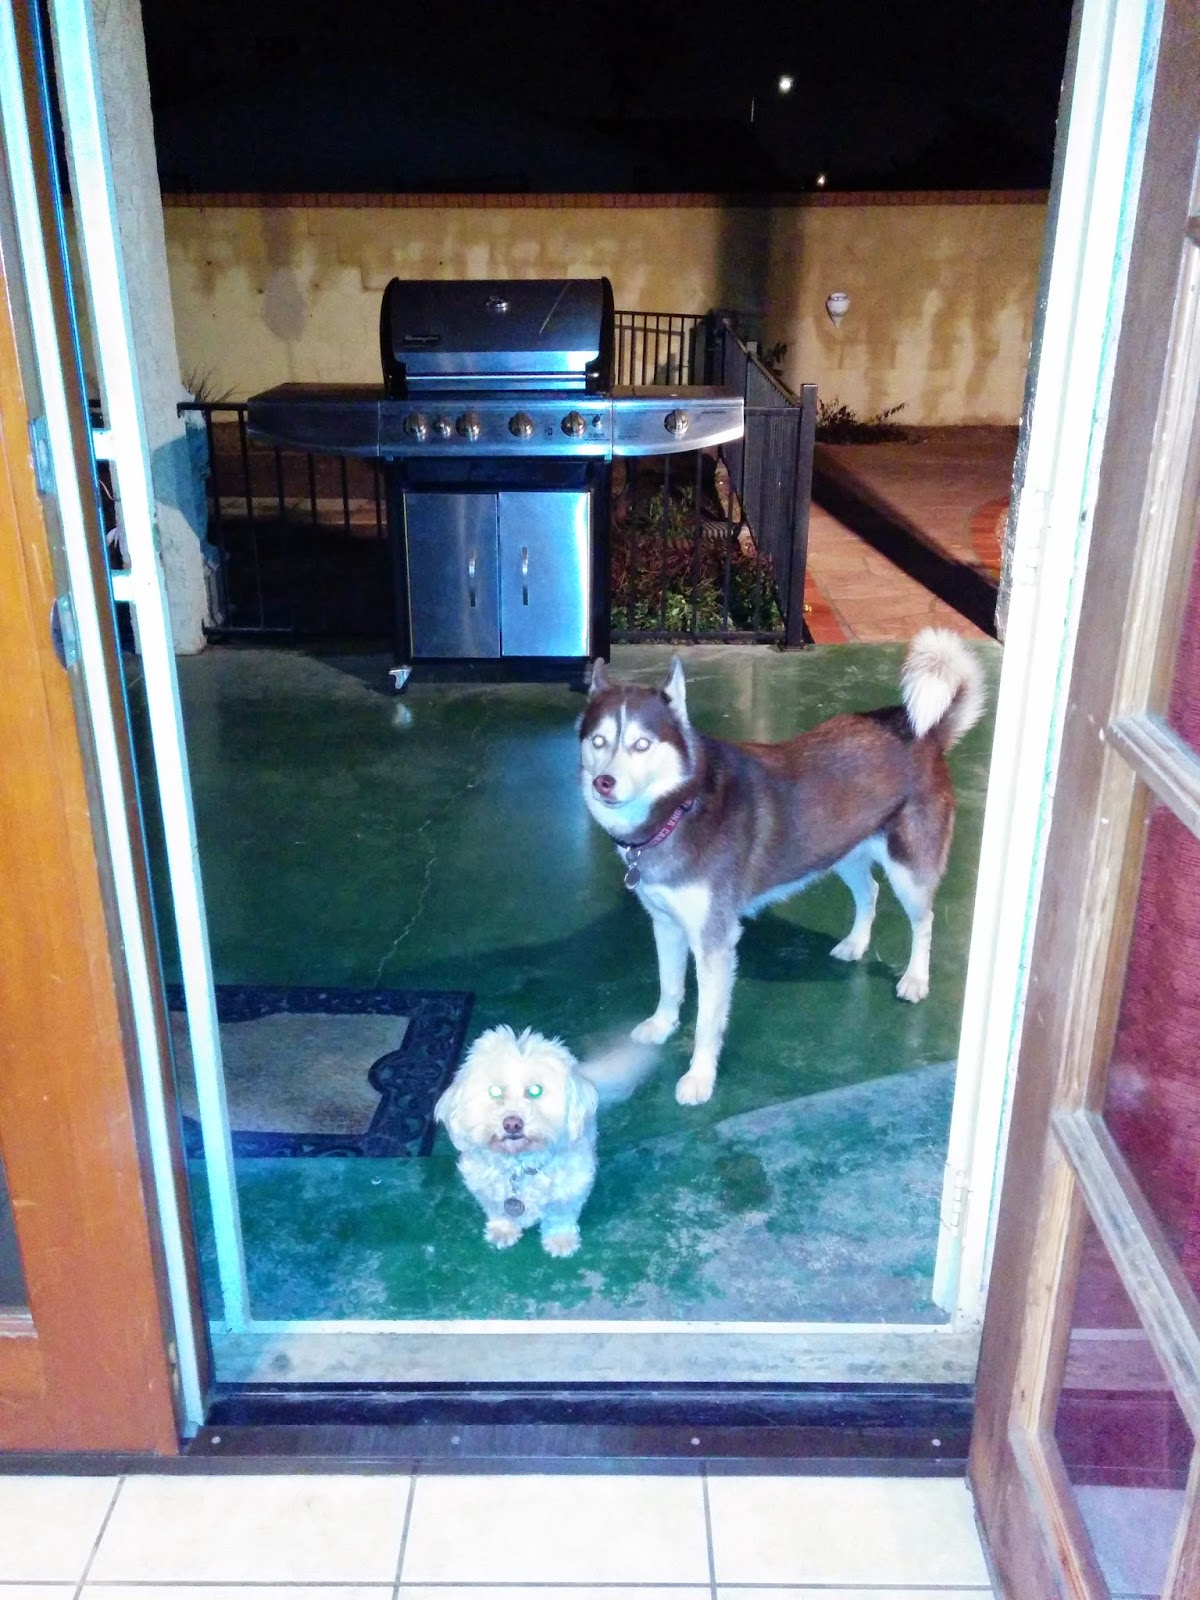 Our dogs know to Wait anytime they go through a door, even at our house